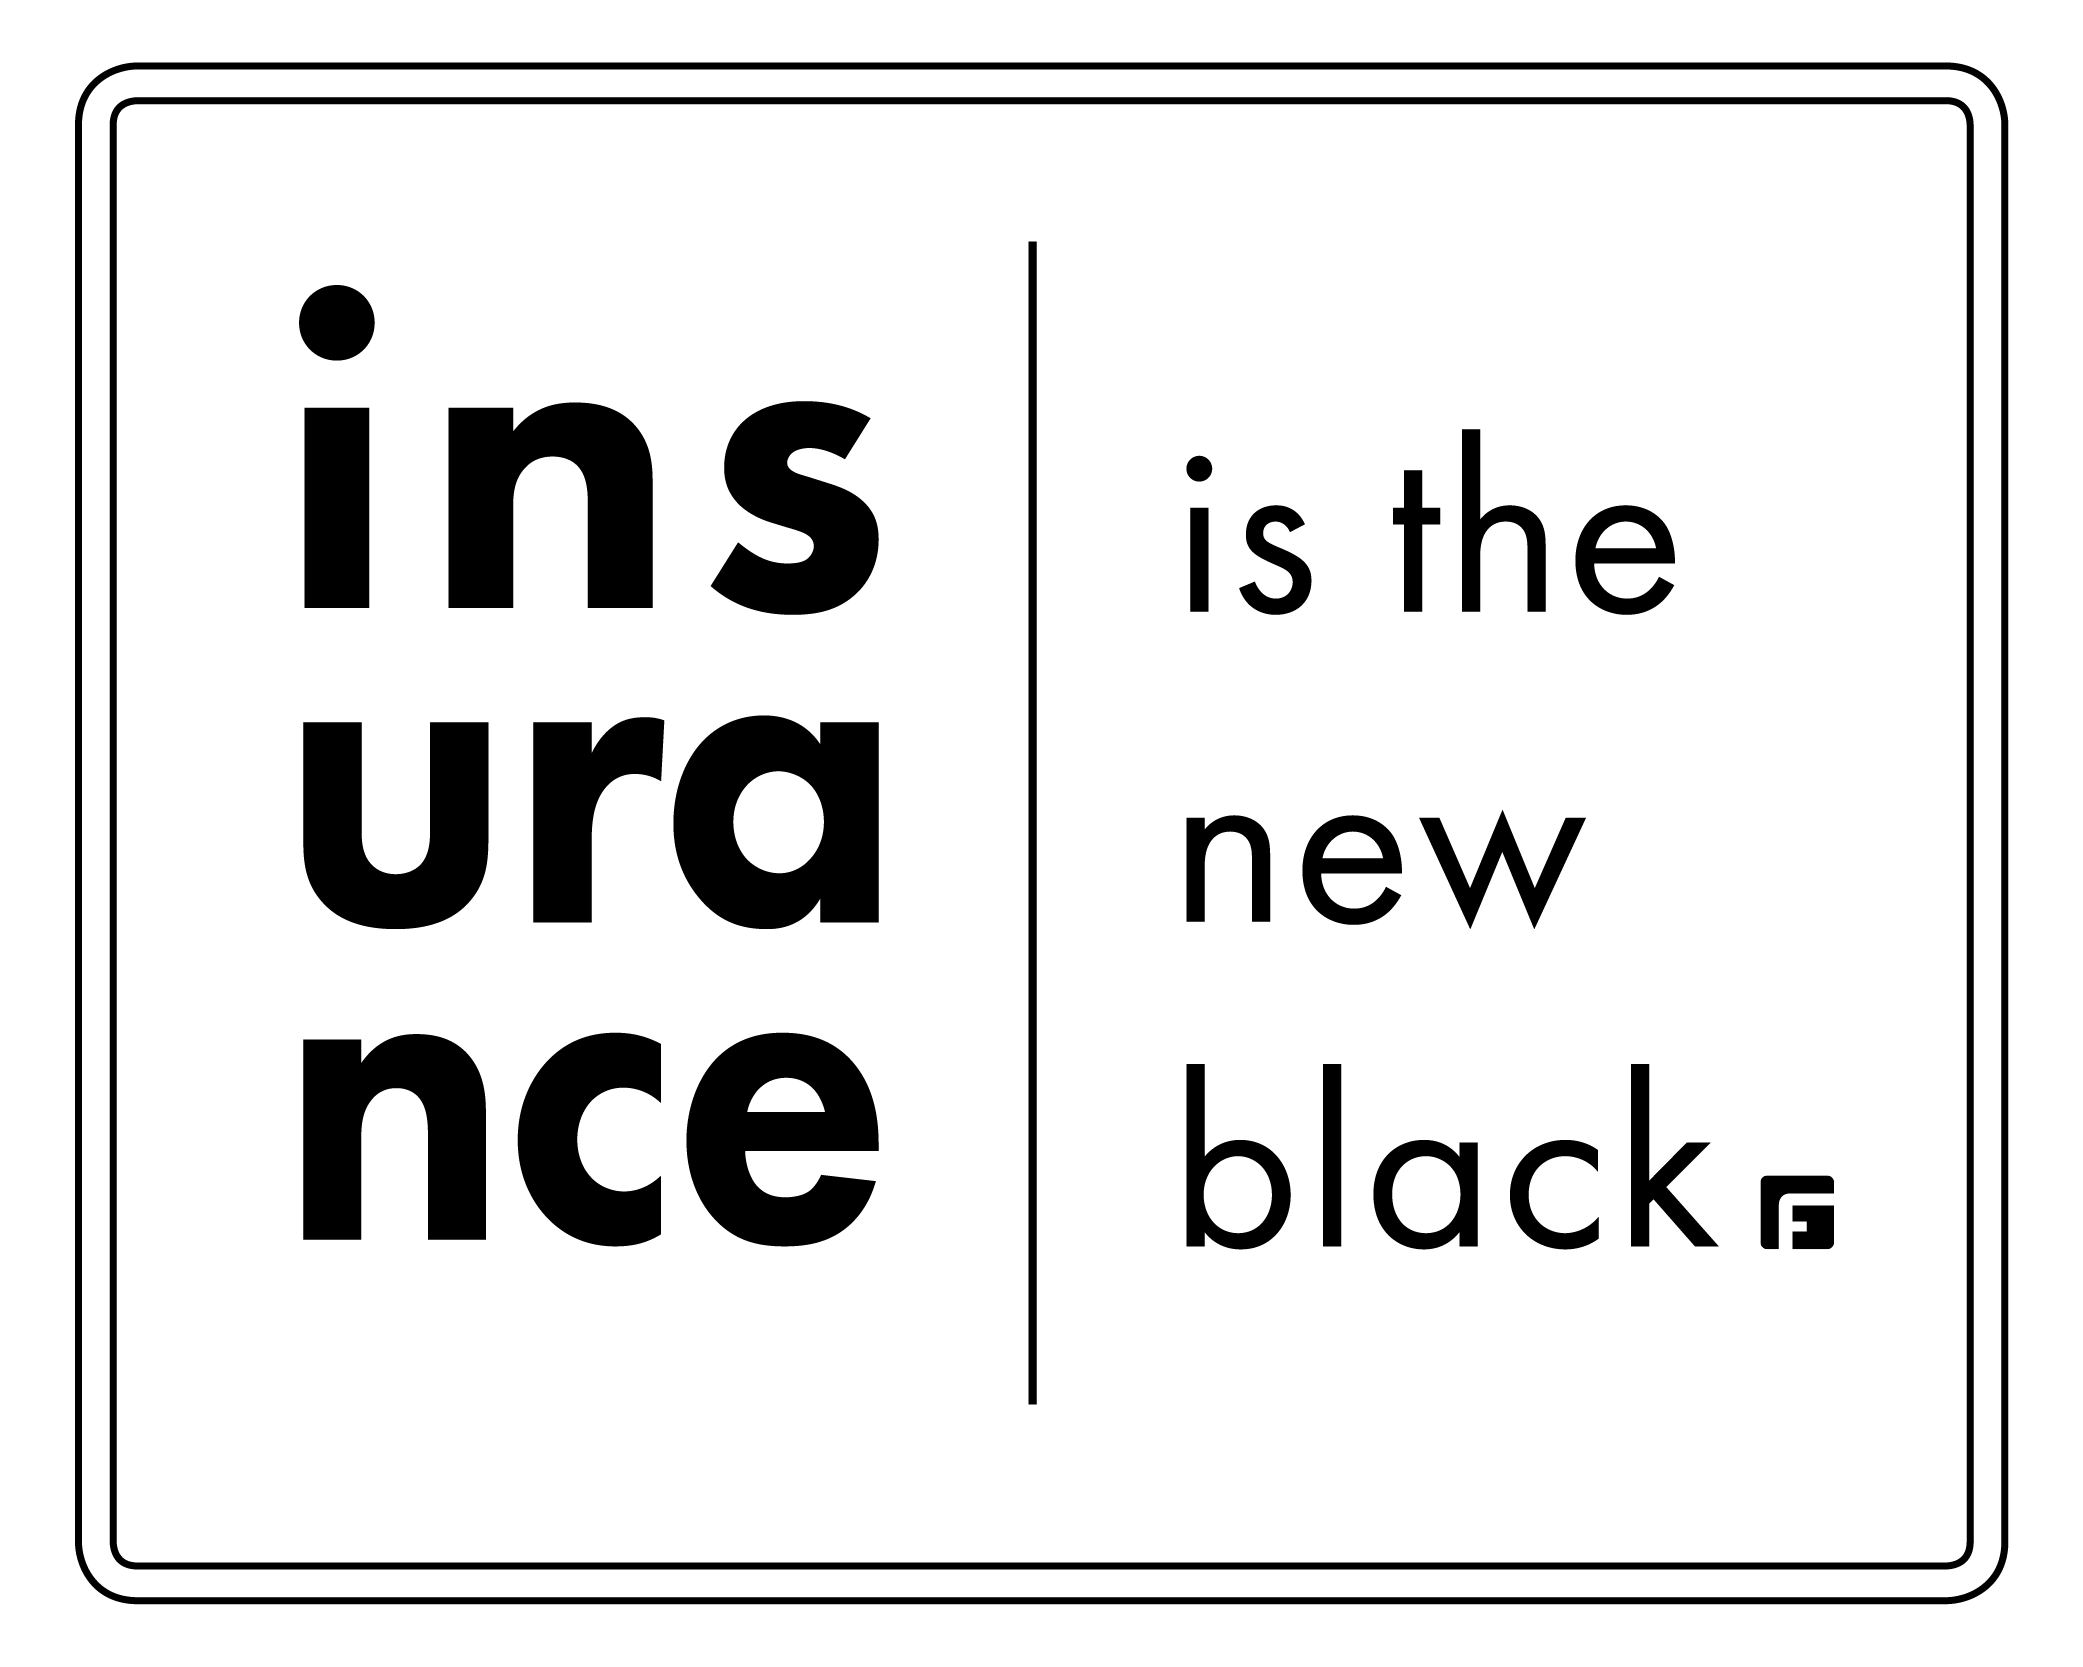 insurance is the new black image